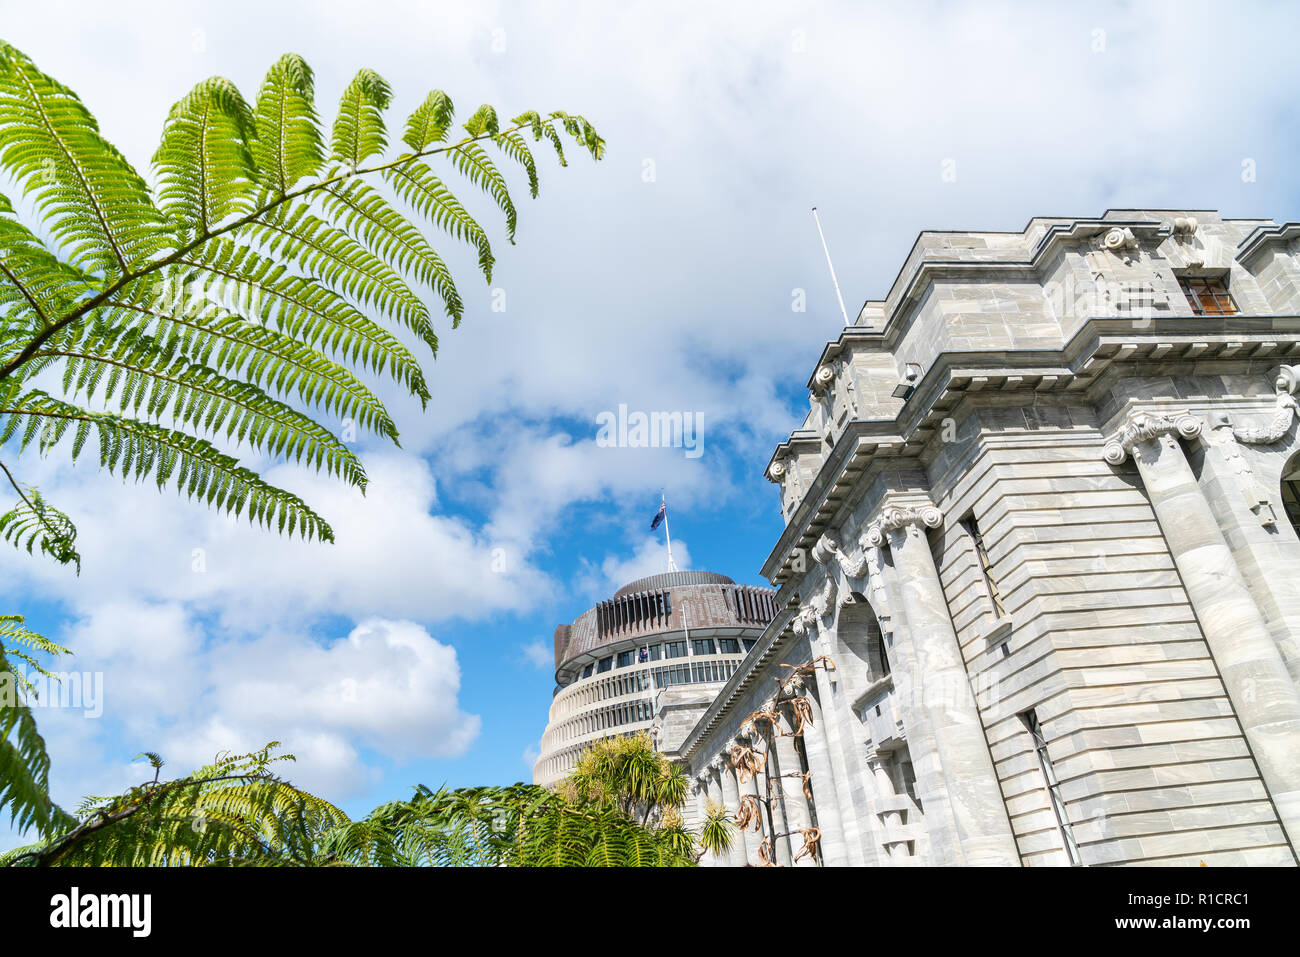 New Zealand Government buildings, House neo classical style House of Parliament with Beehive behind with iconic ponga fern frond one of NZ's emblems. Stock Photo